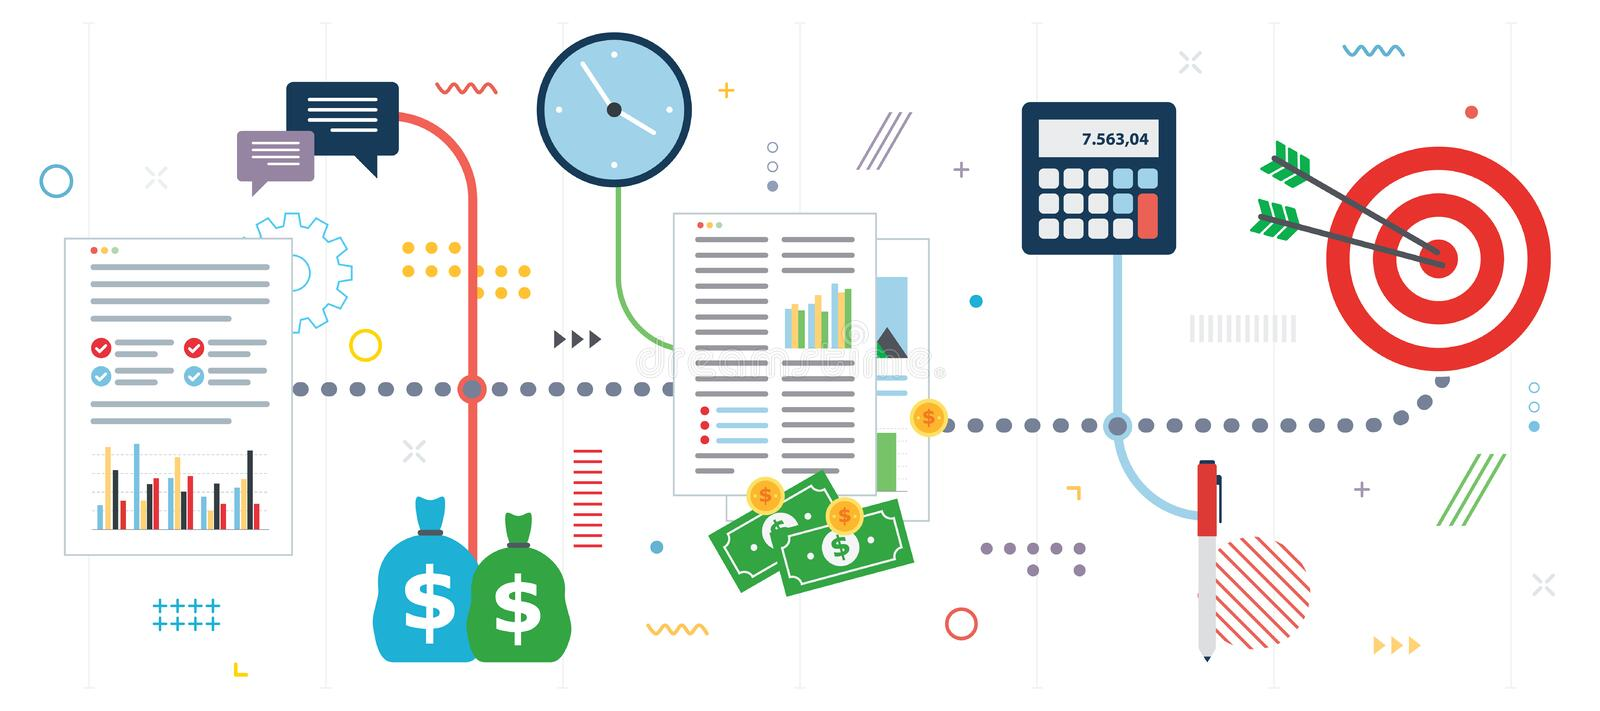 Business finance, investment and strategy icon set. Business finance, investment and strategy. Financial chart of growth and profits, investment flow and success vector illustration